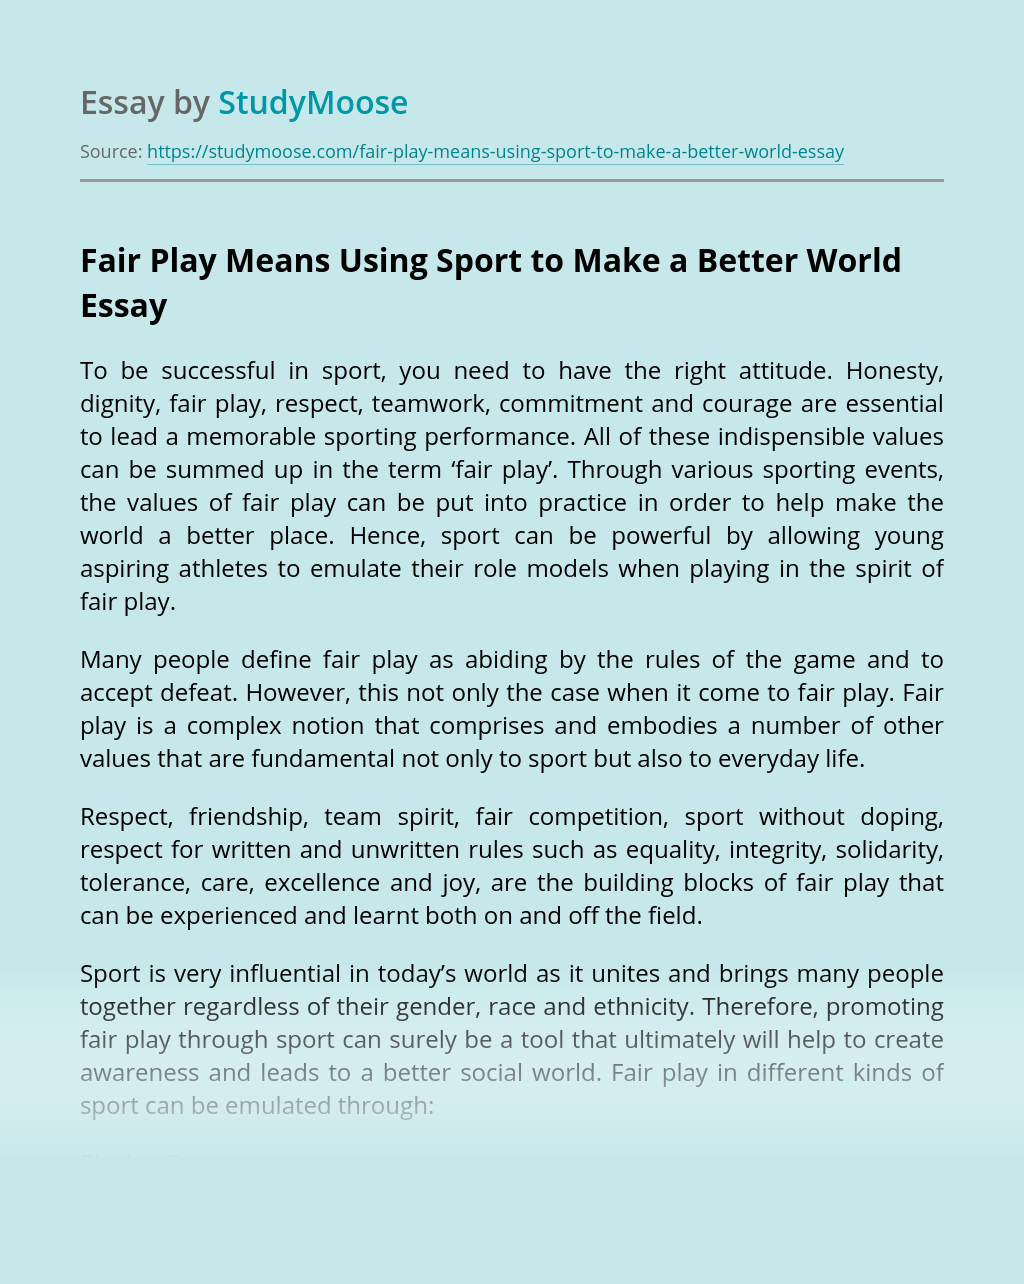 Fair Play Means Using Sport to Make a Better World